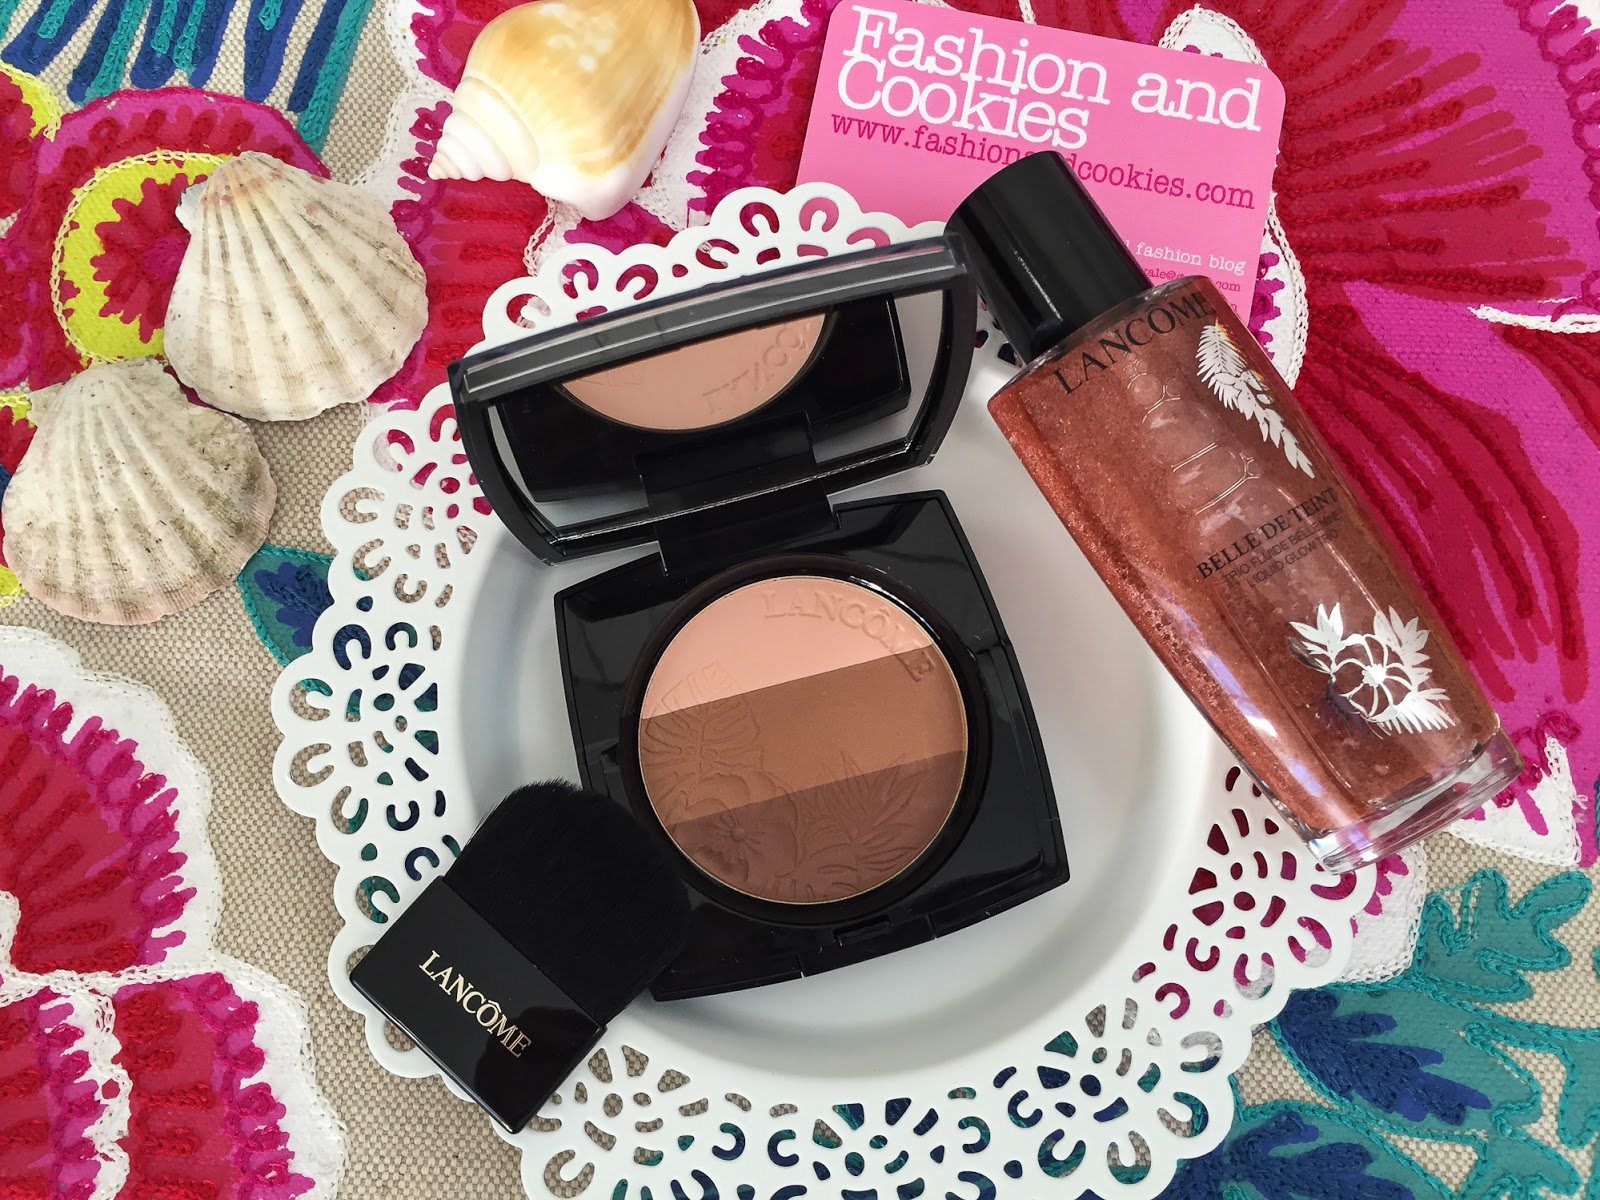 Lancôme makeup collection 2016: Summer bliss, Belle de Teint and Powder glow trio review on Fashion and Cookies fashion blog, fashion blogger